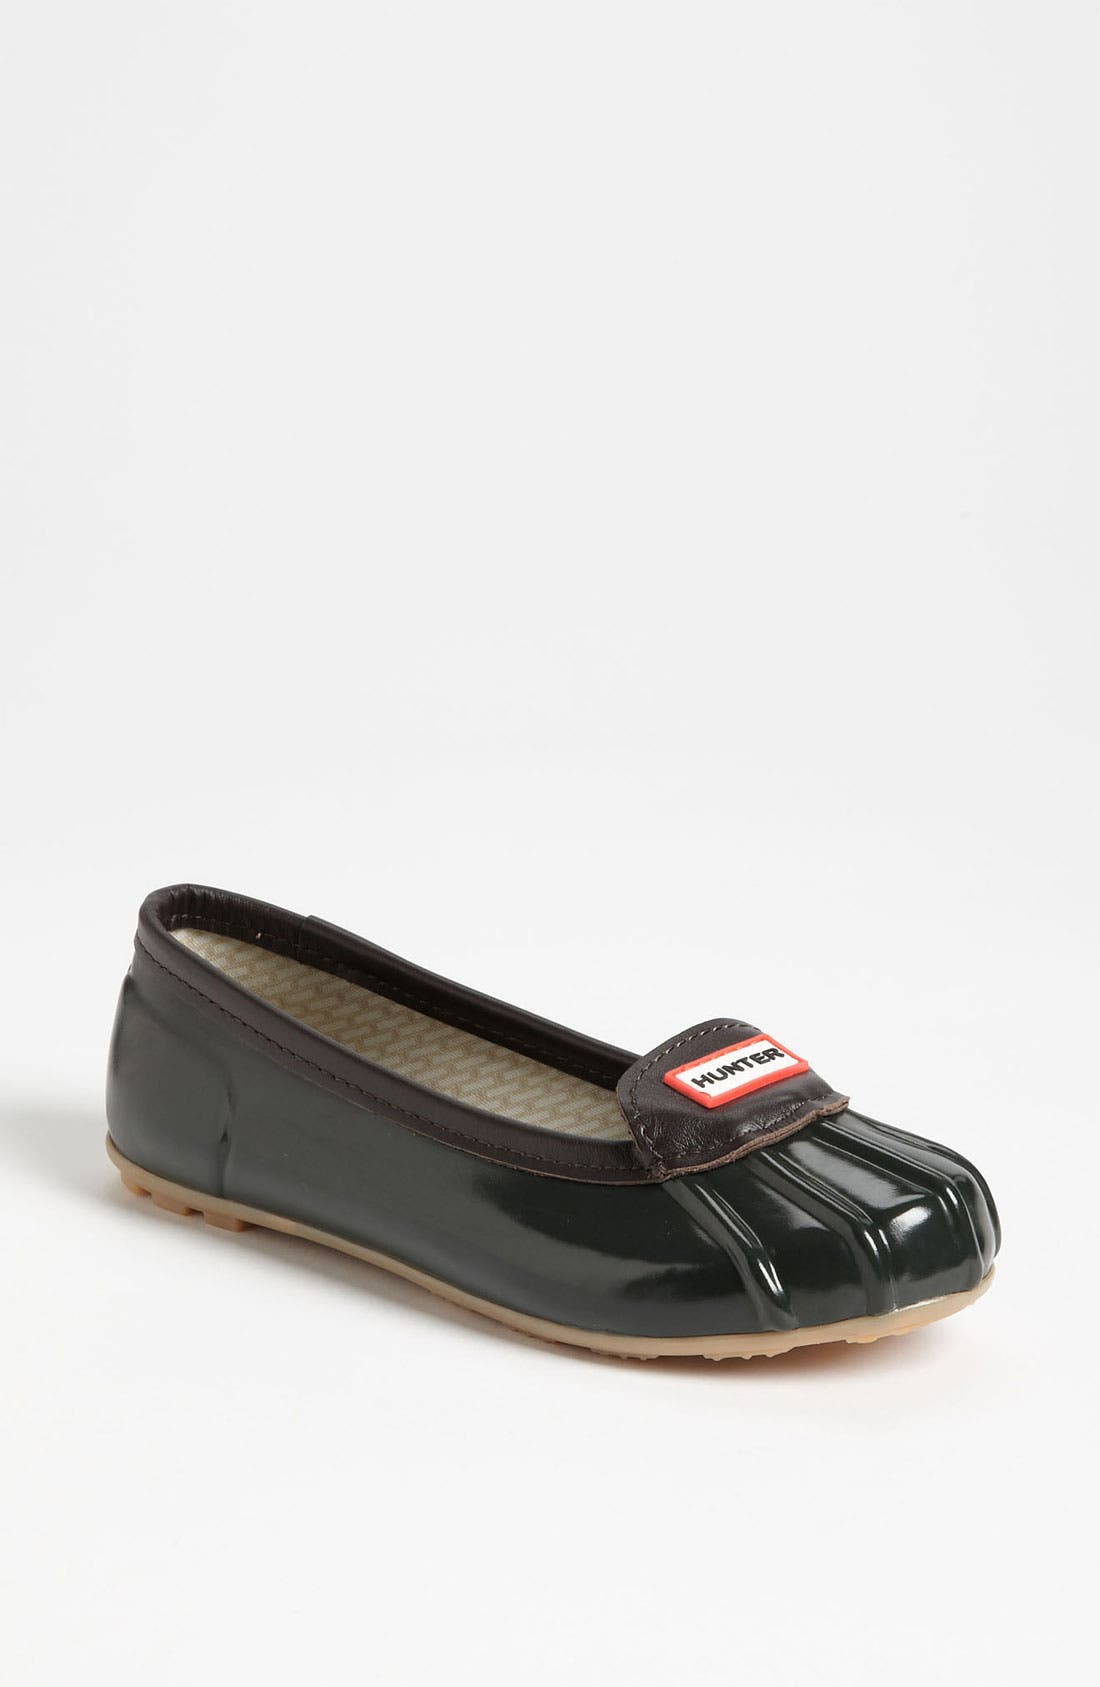 HUNTER,                             'Jena' Waterproof Flat,                             Main thumbnail 1, color,                             301